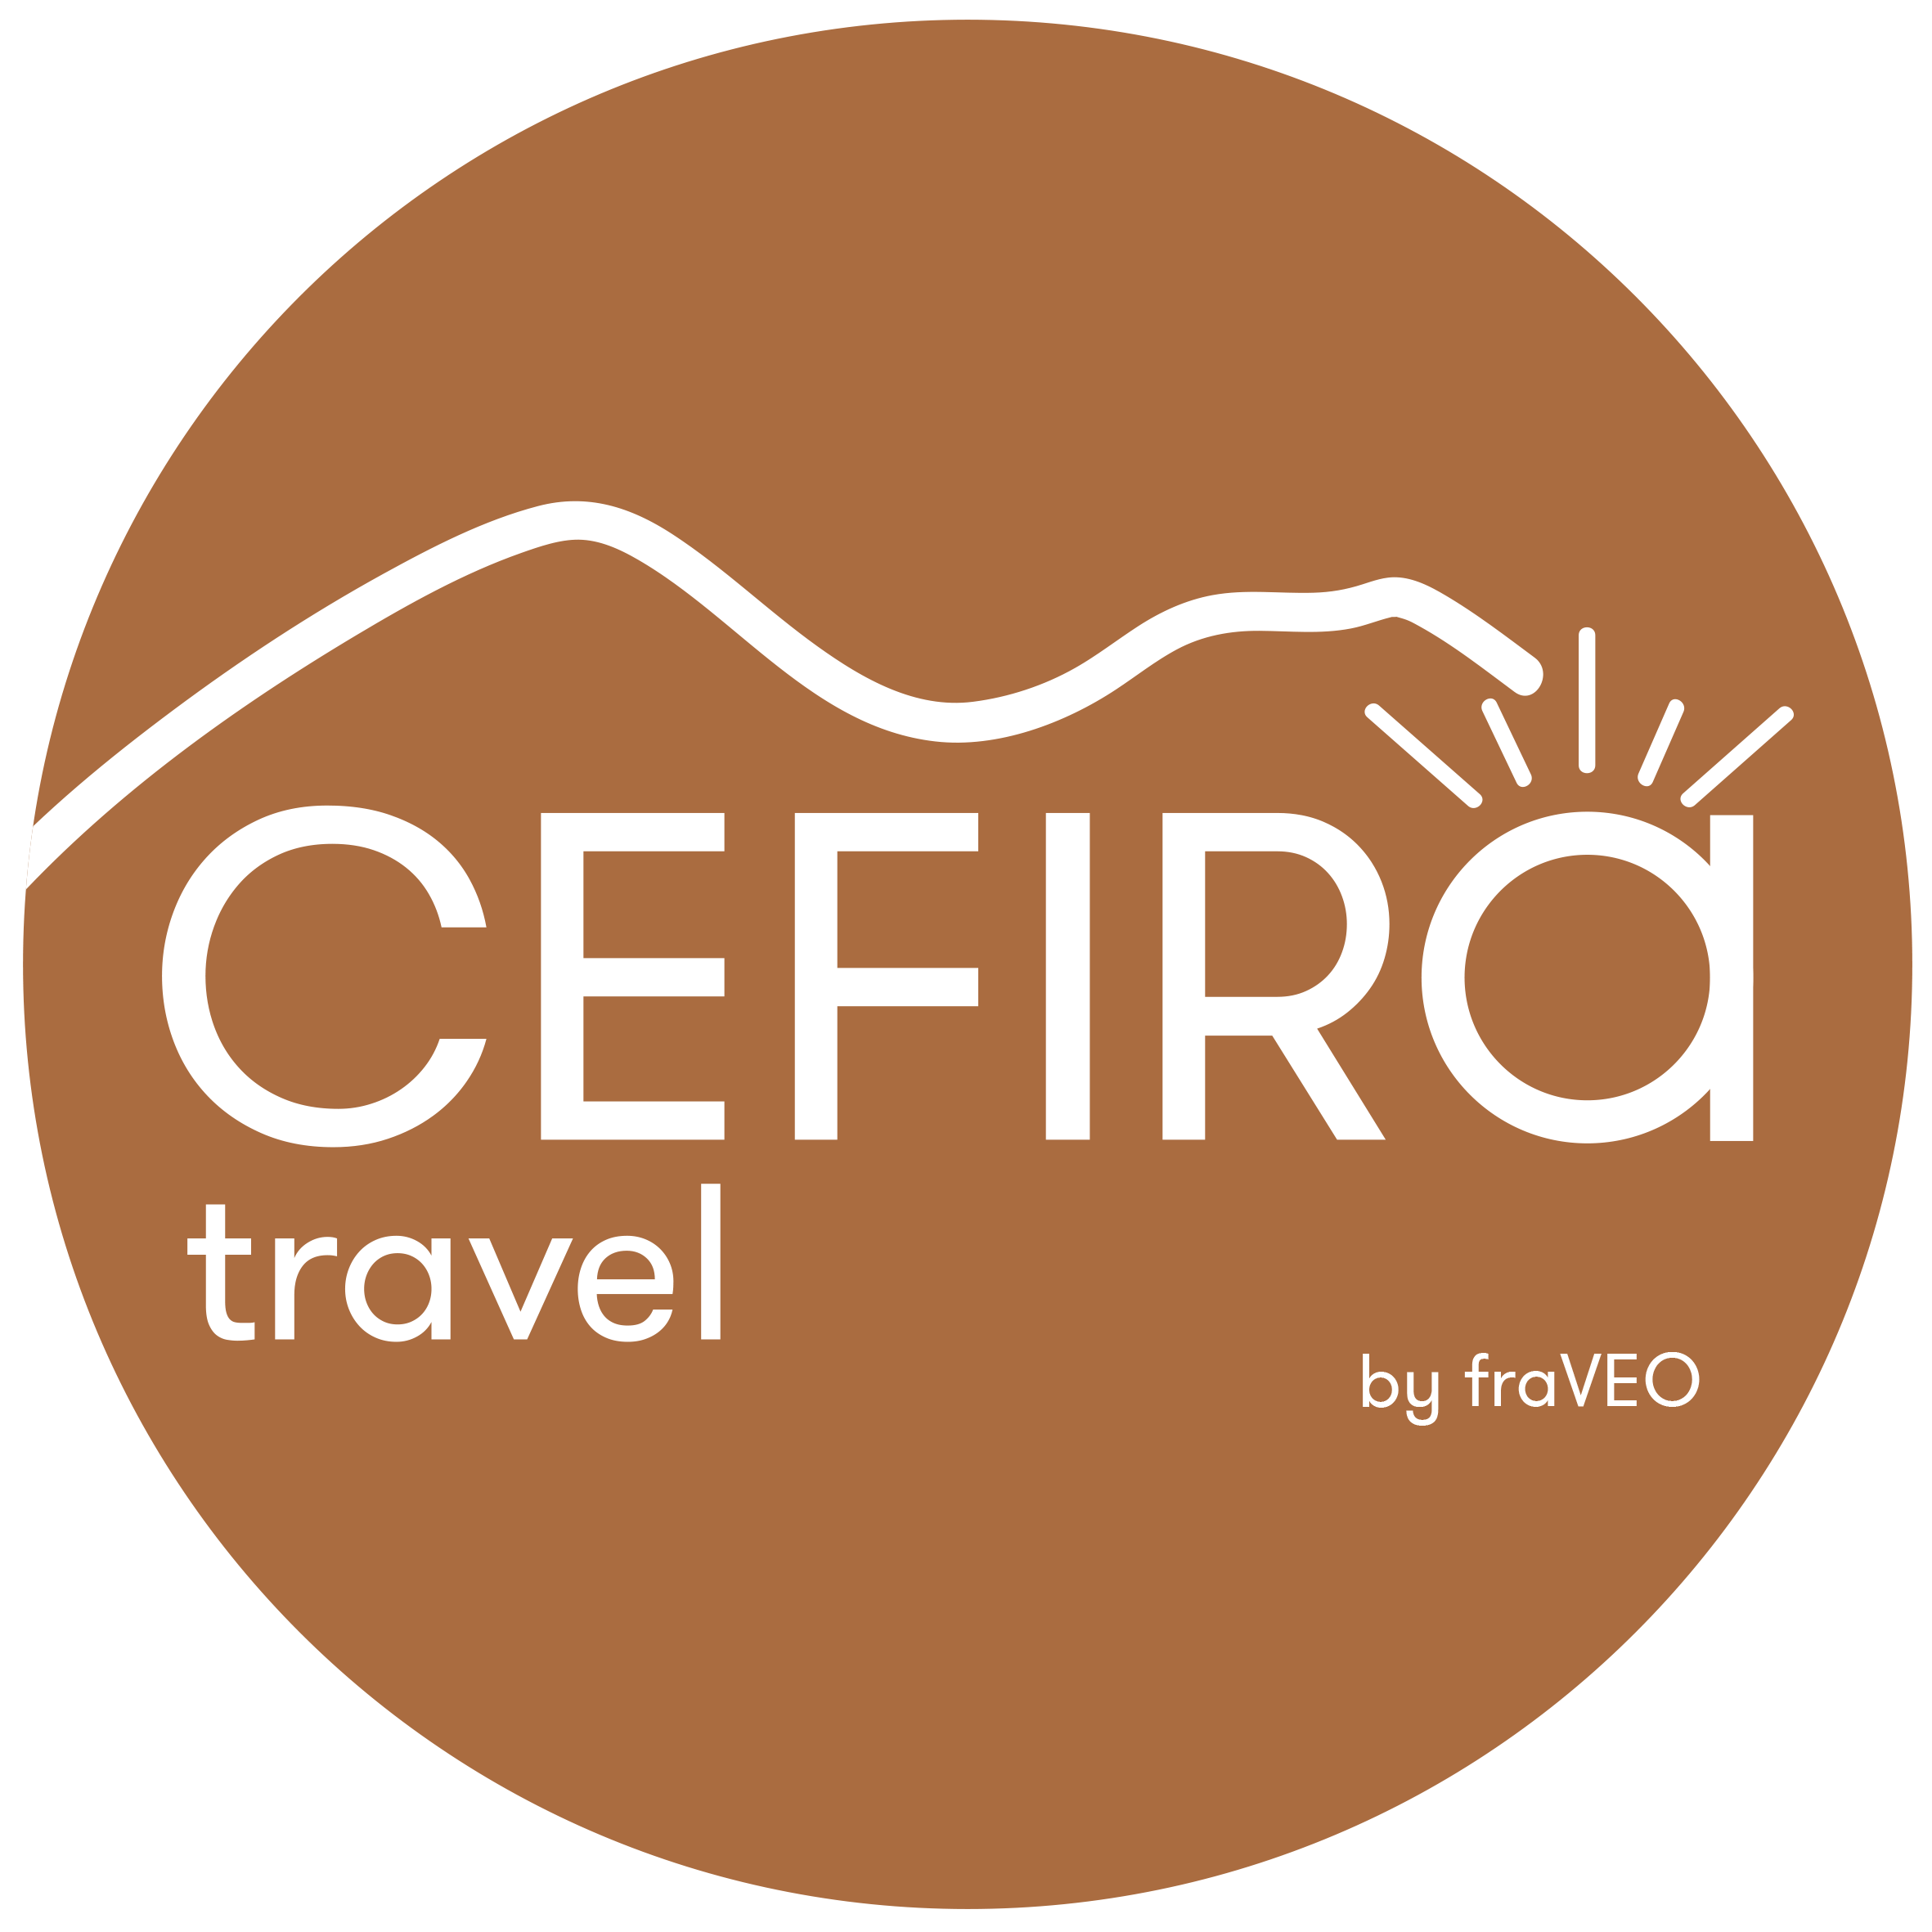 Cefira Travel by Fraveo